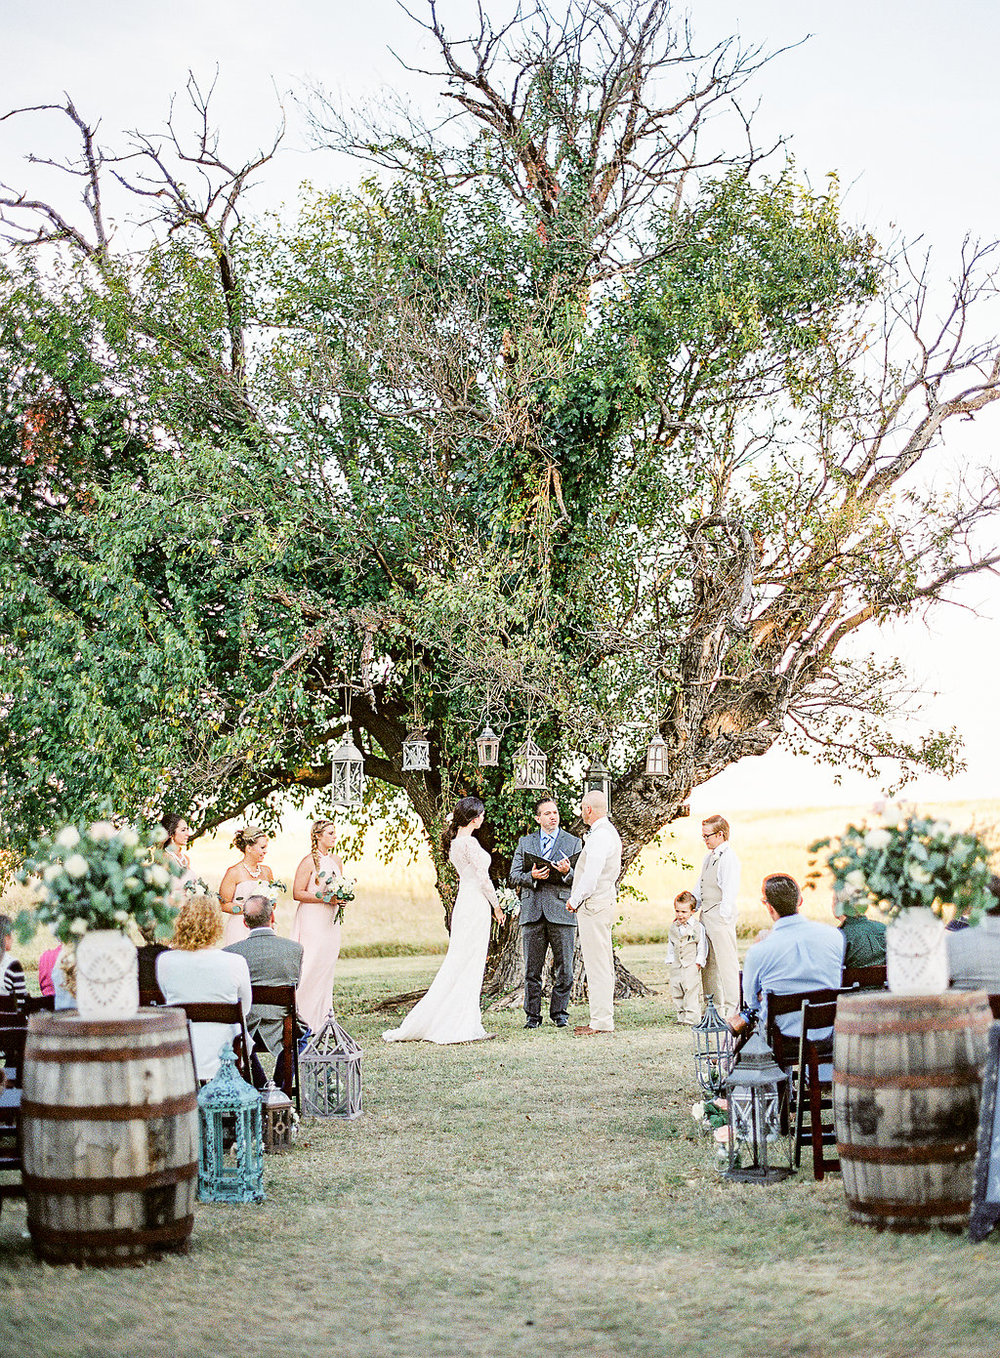 The Holsted Wedding could not have been more magical!